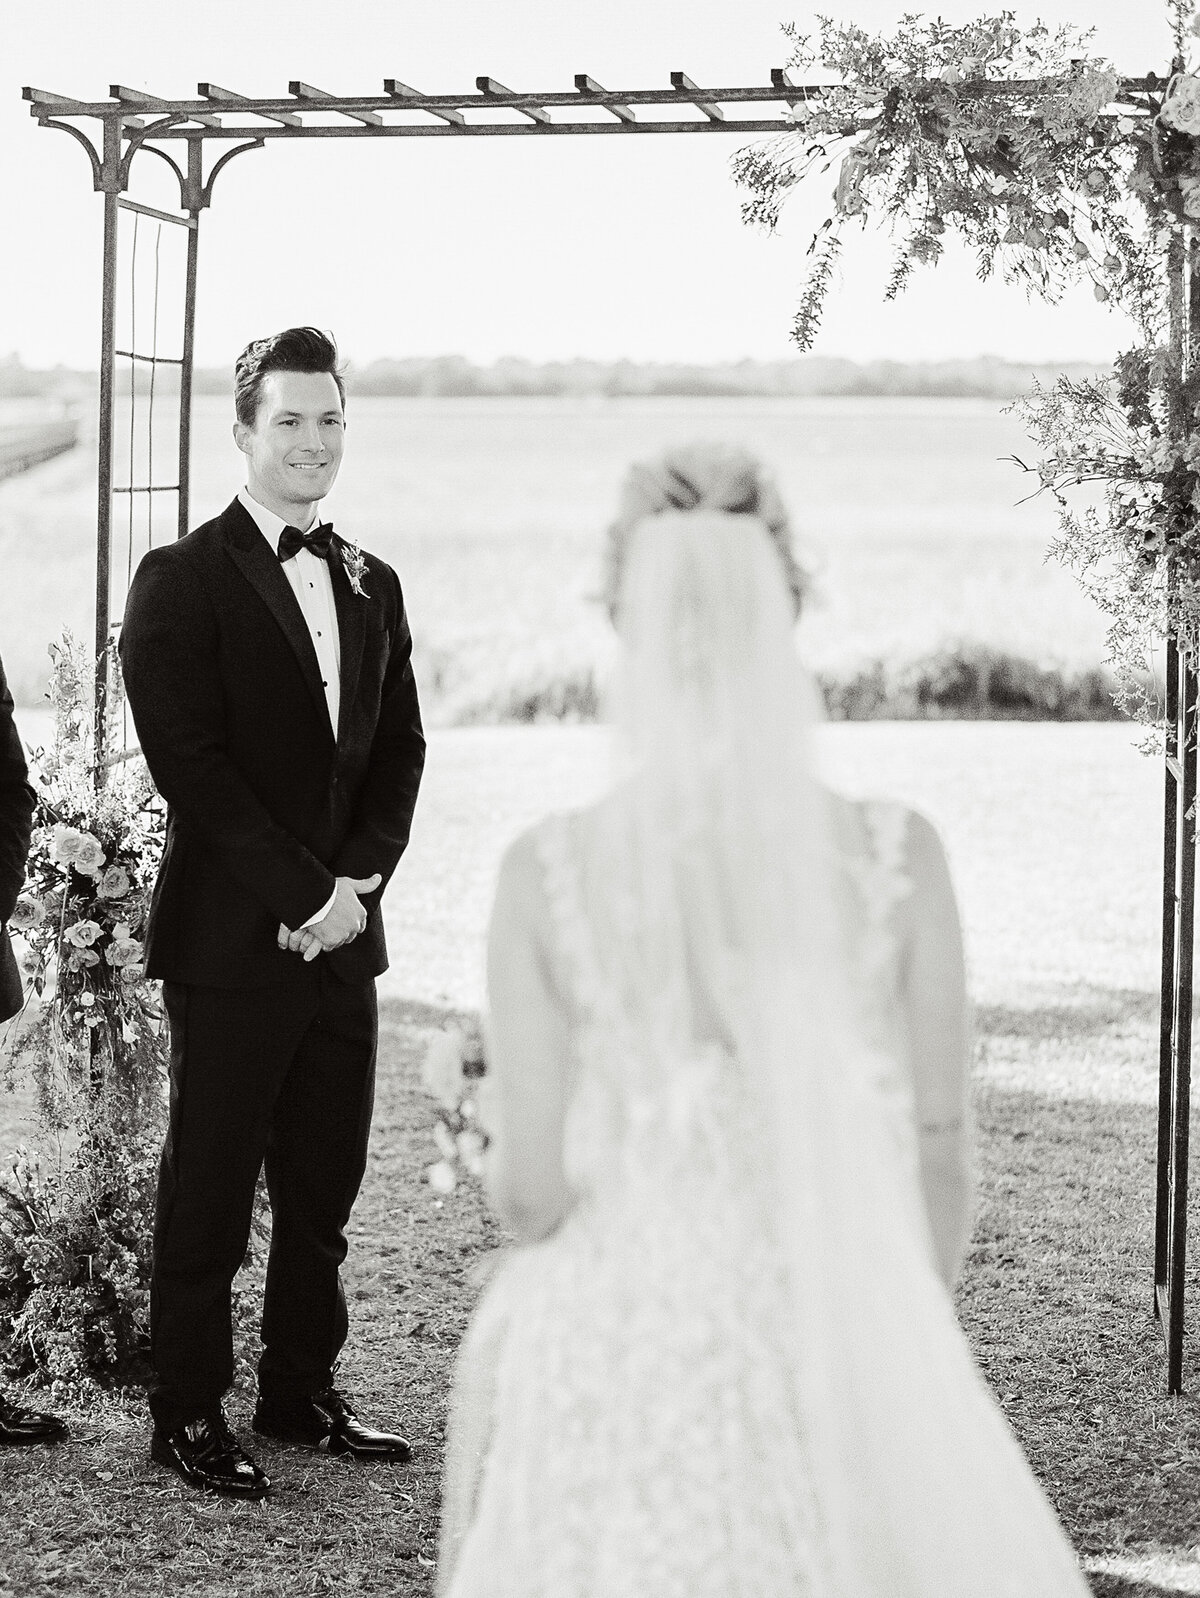 bride walking down aisle to groom in tuxedo at outdoor ceremony at Lowndes Grove Charleston wedding black and white